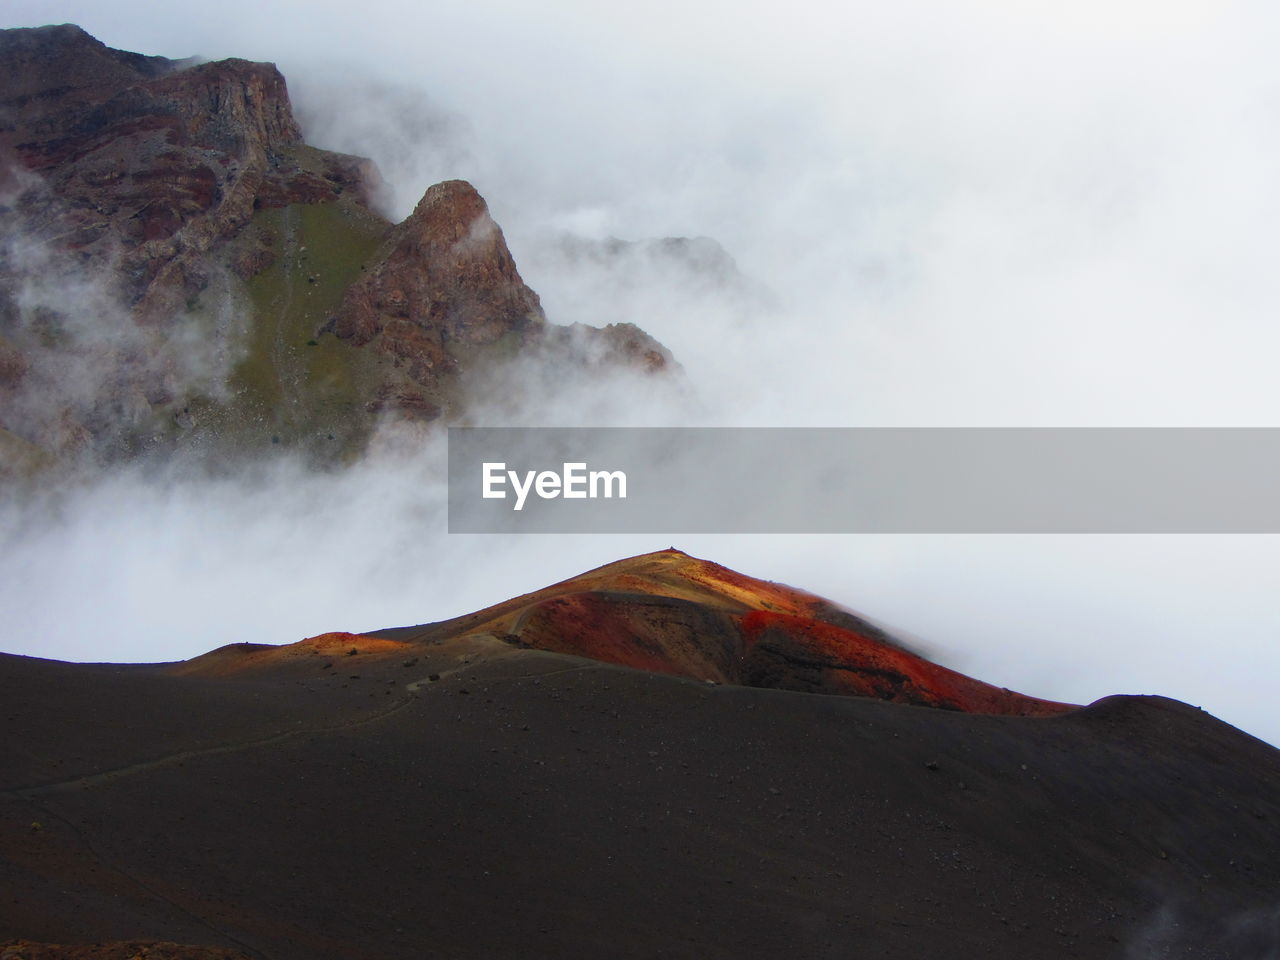 mountain, beauty in nature, volcano, geology, non-urban scene, scenics - nature, tranquil scene, smoke - physical structure, landscape, no people, environment, nature, tranquility, sky, physical geography, land, power in nature, volcanic landscape, day, power, outdoors, volcanic crater, mountain peak, arid climate